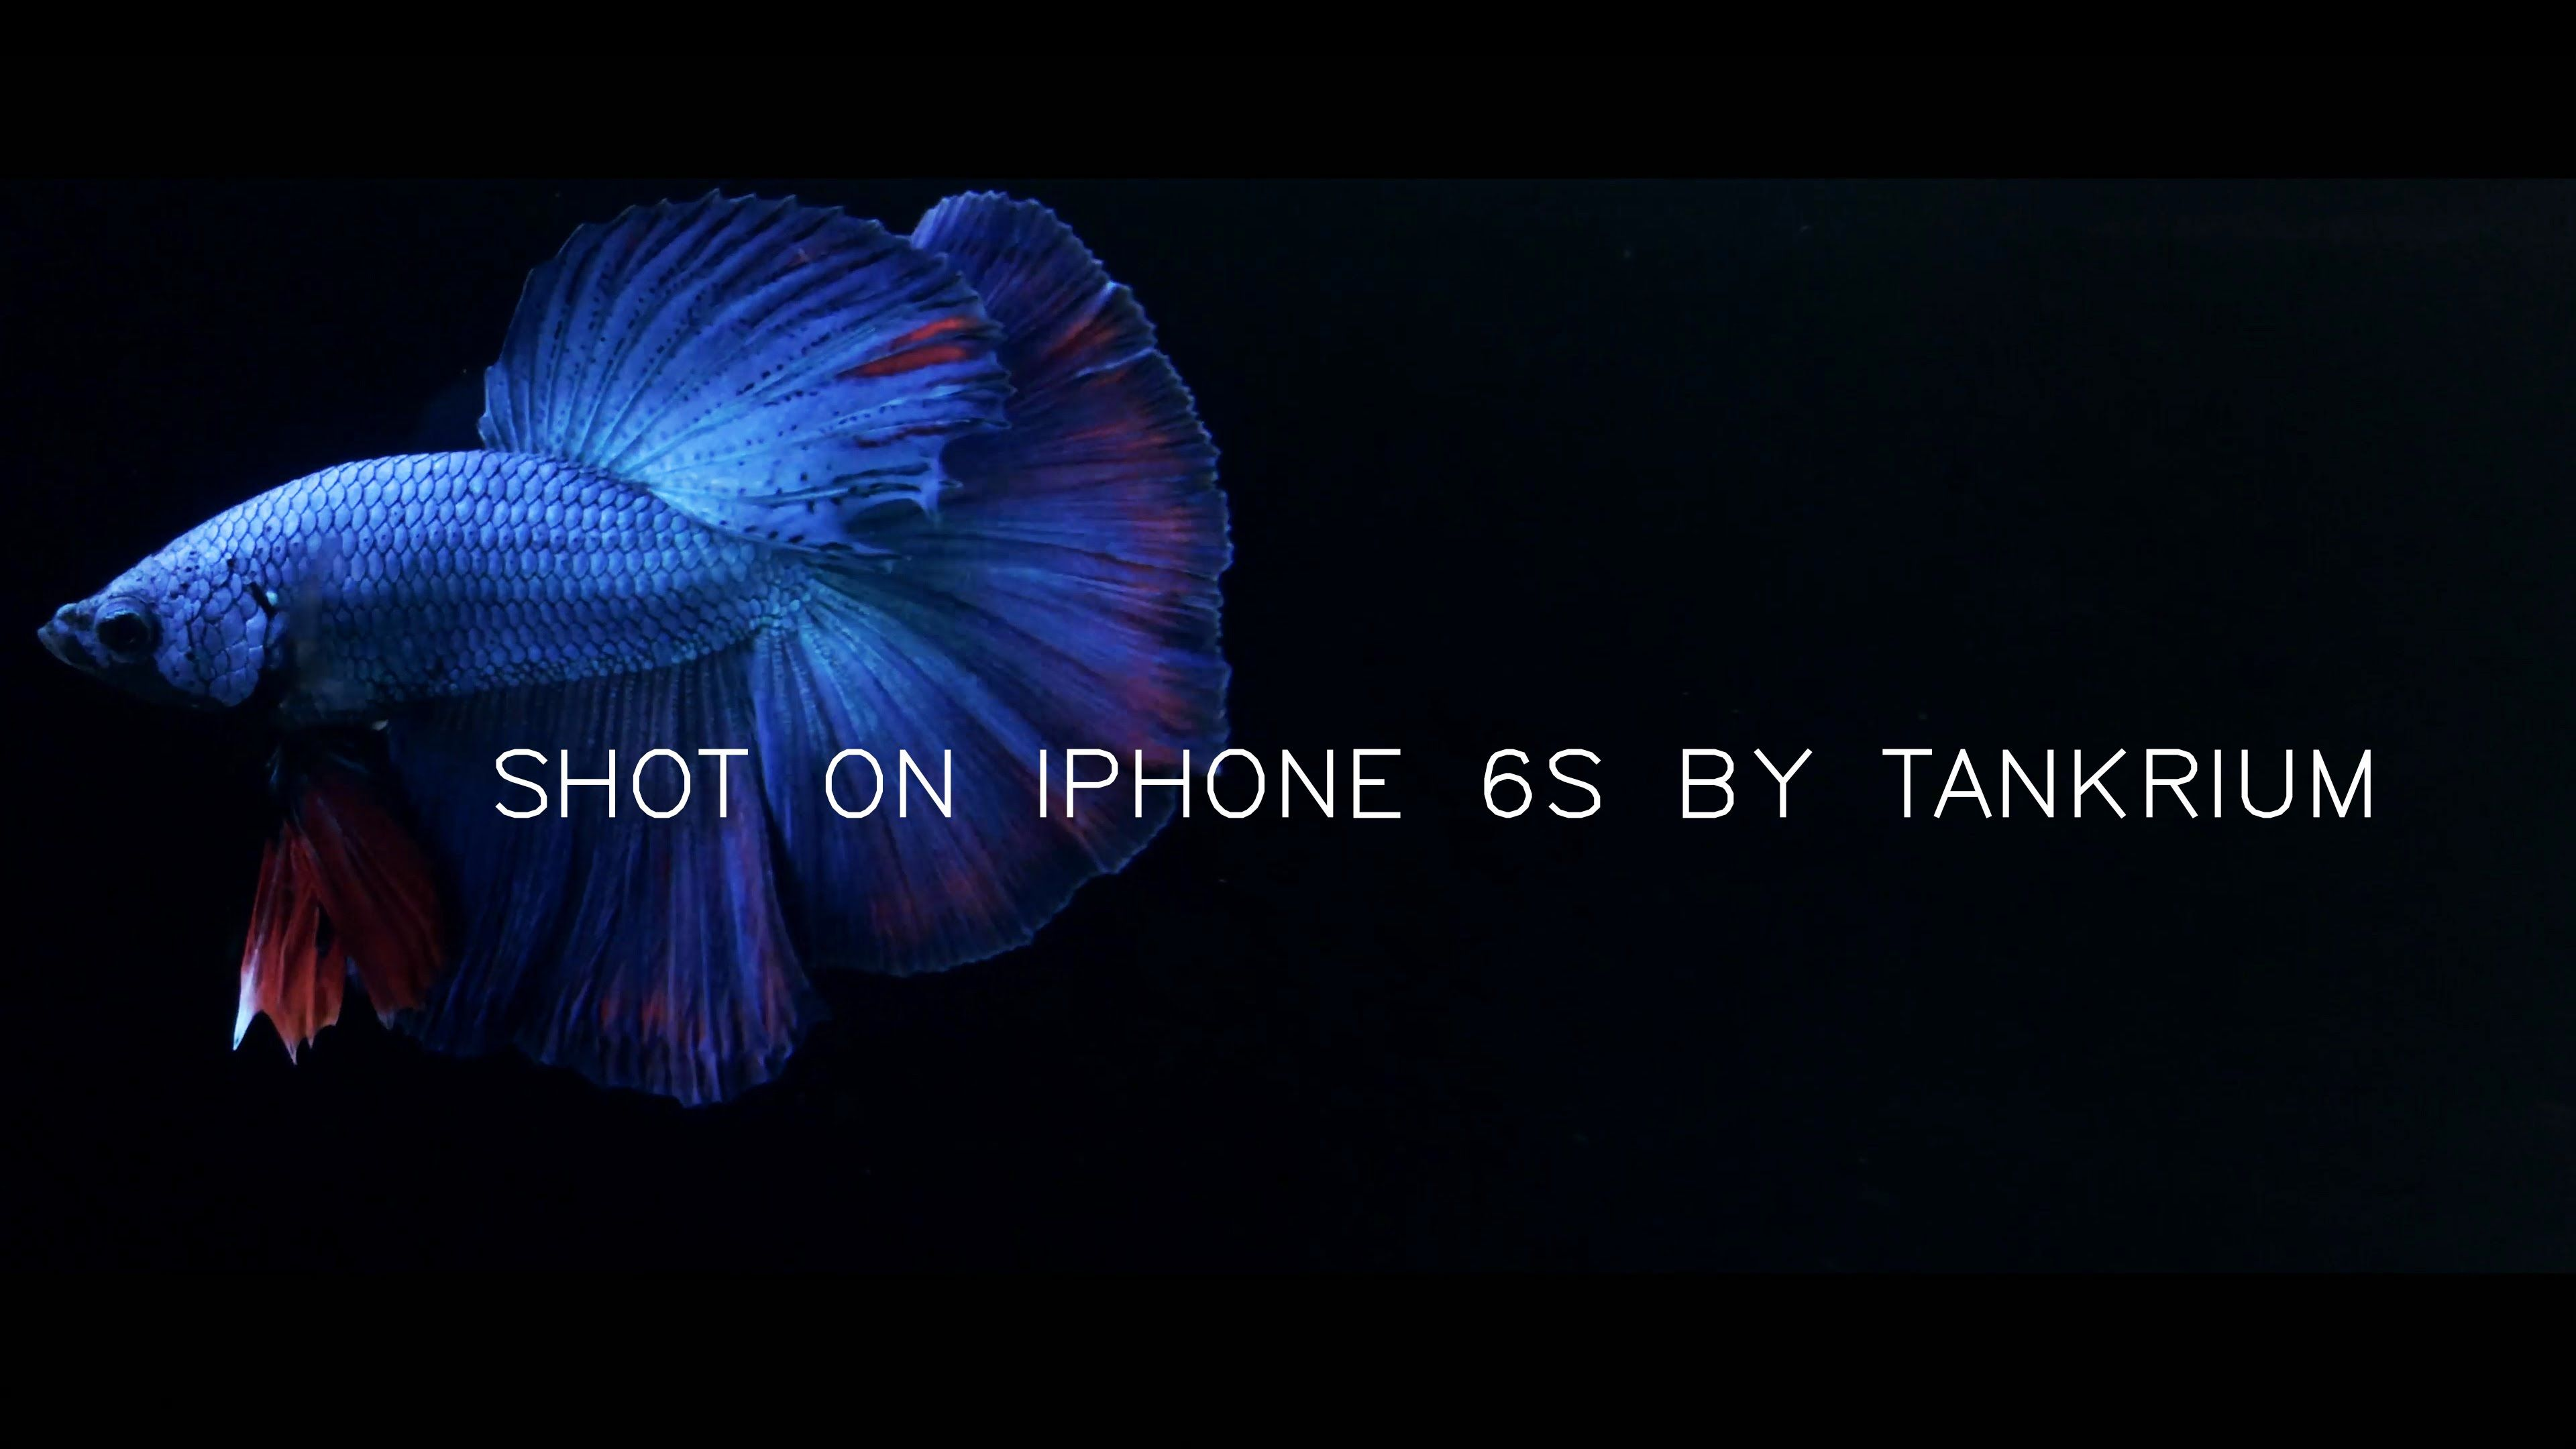 This Video was Shon on iPhone 6s in 4K / Video Test of Betta Fish in